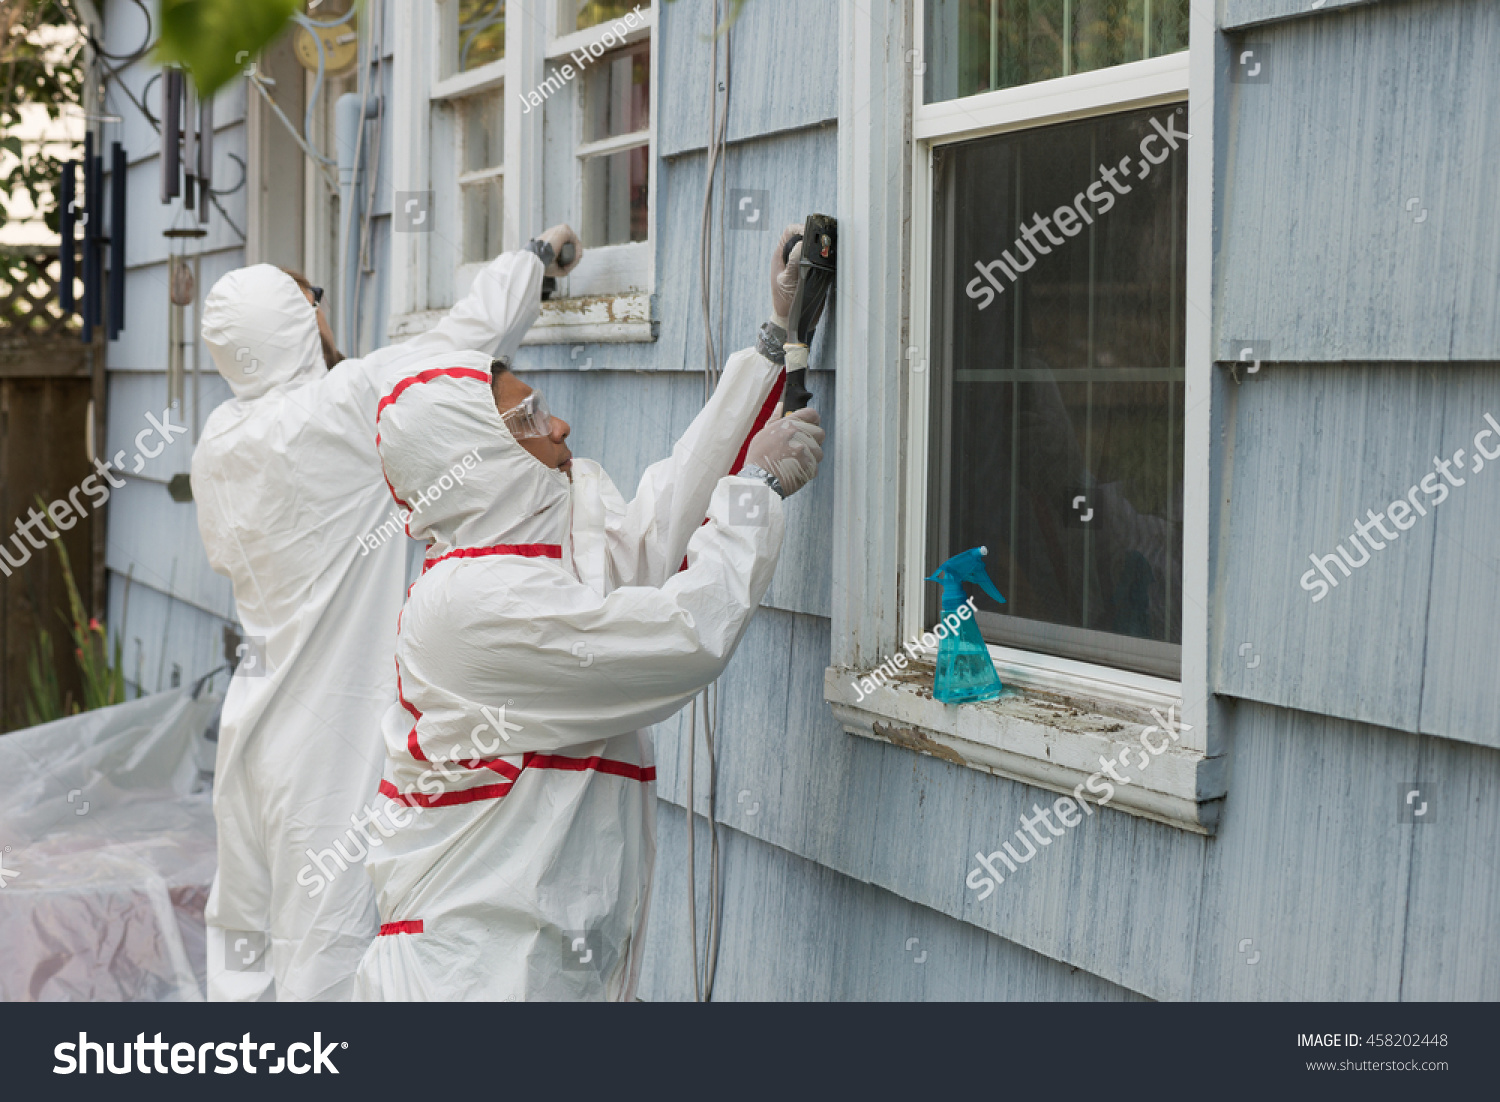 Two House Painters Hazmat Suits Removing Stock Photo 458202448 Shutterstock